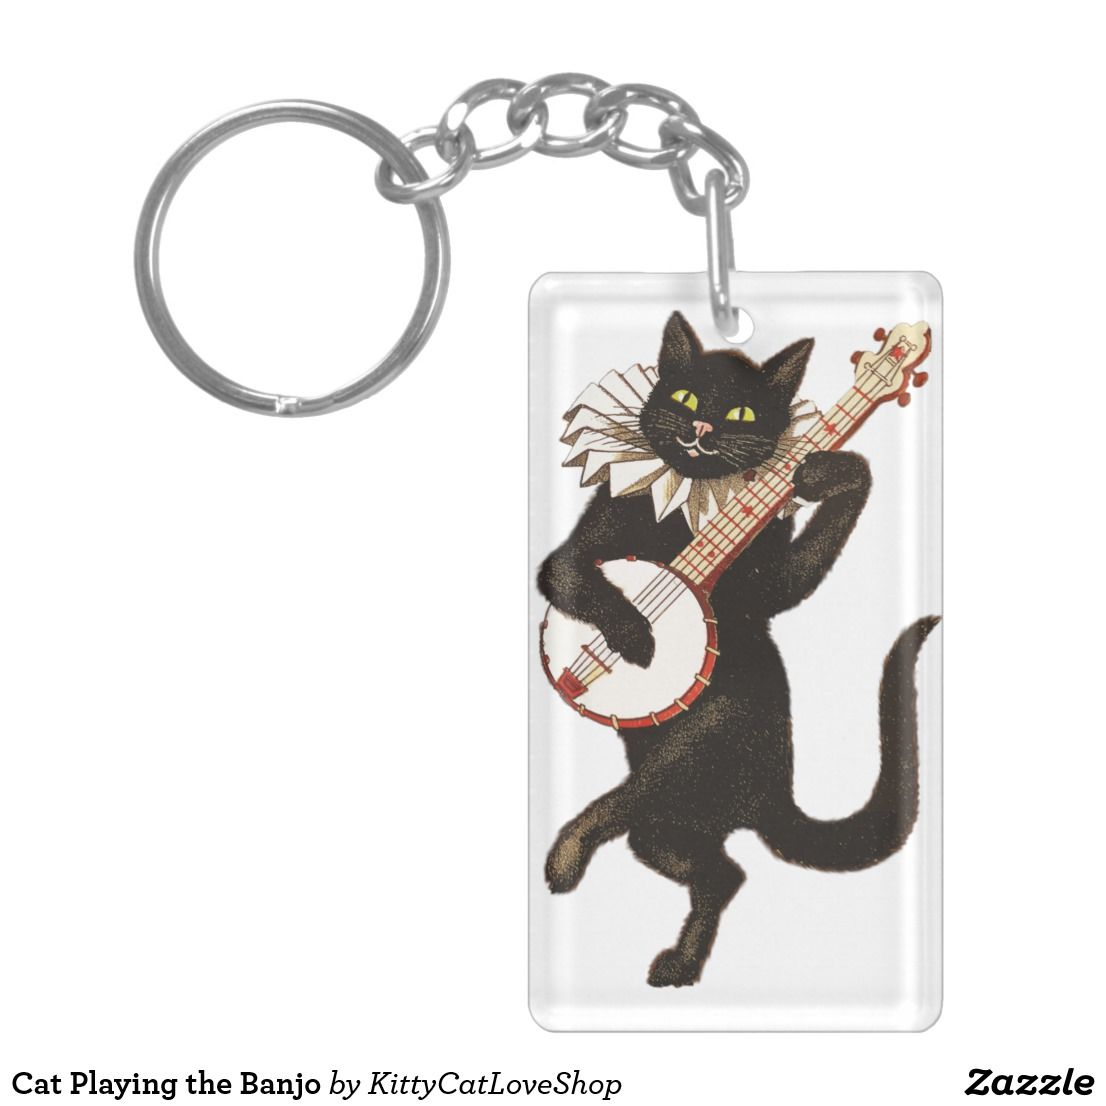 Cat playing the banjo kitty cat love shop pinterest kitty and cat